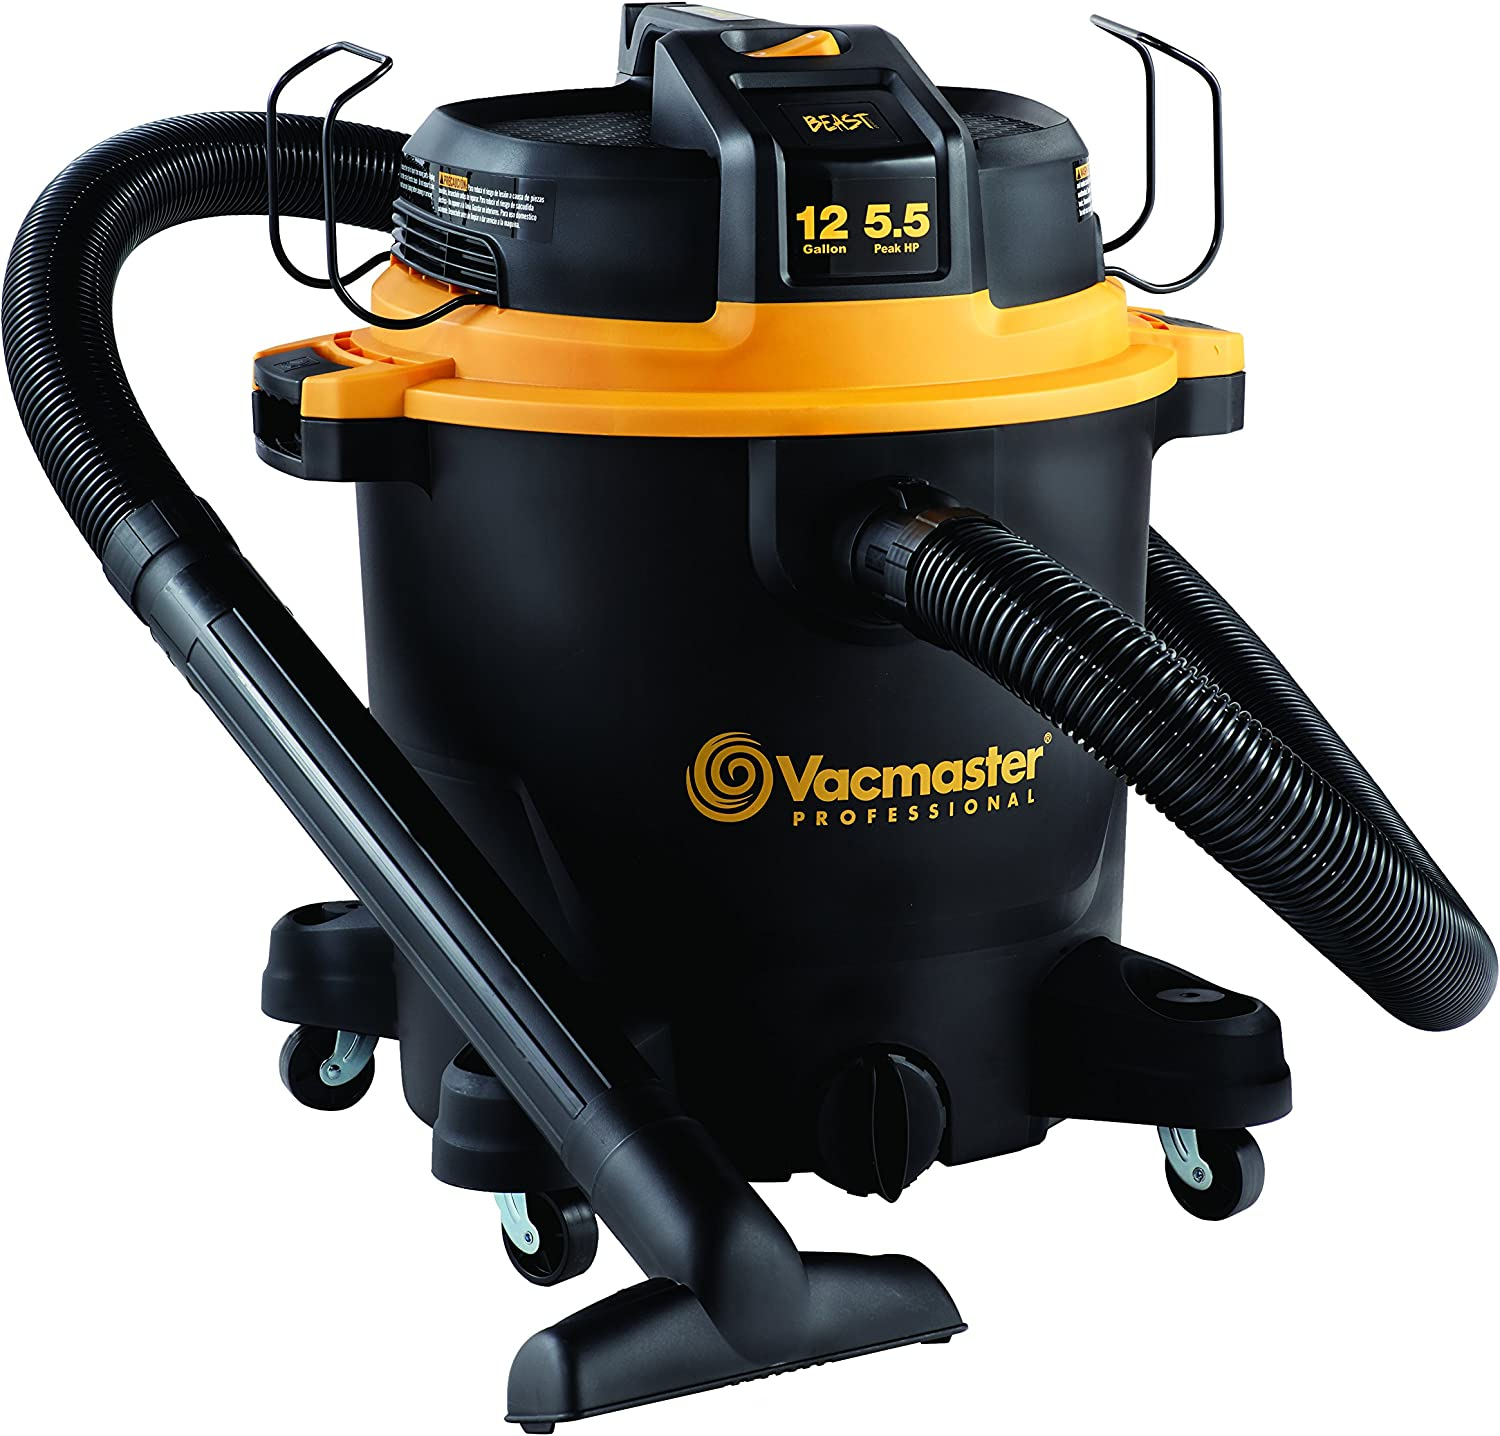 Vacmaster Professional – Professional Wet Dry Vac, 12 Gallon, Beast Series, 5.5 HP 2-1 2 Hose VJH1211PF0201